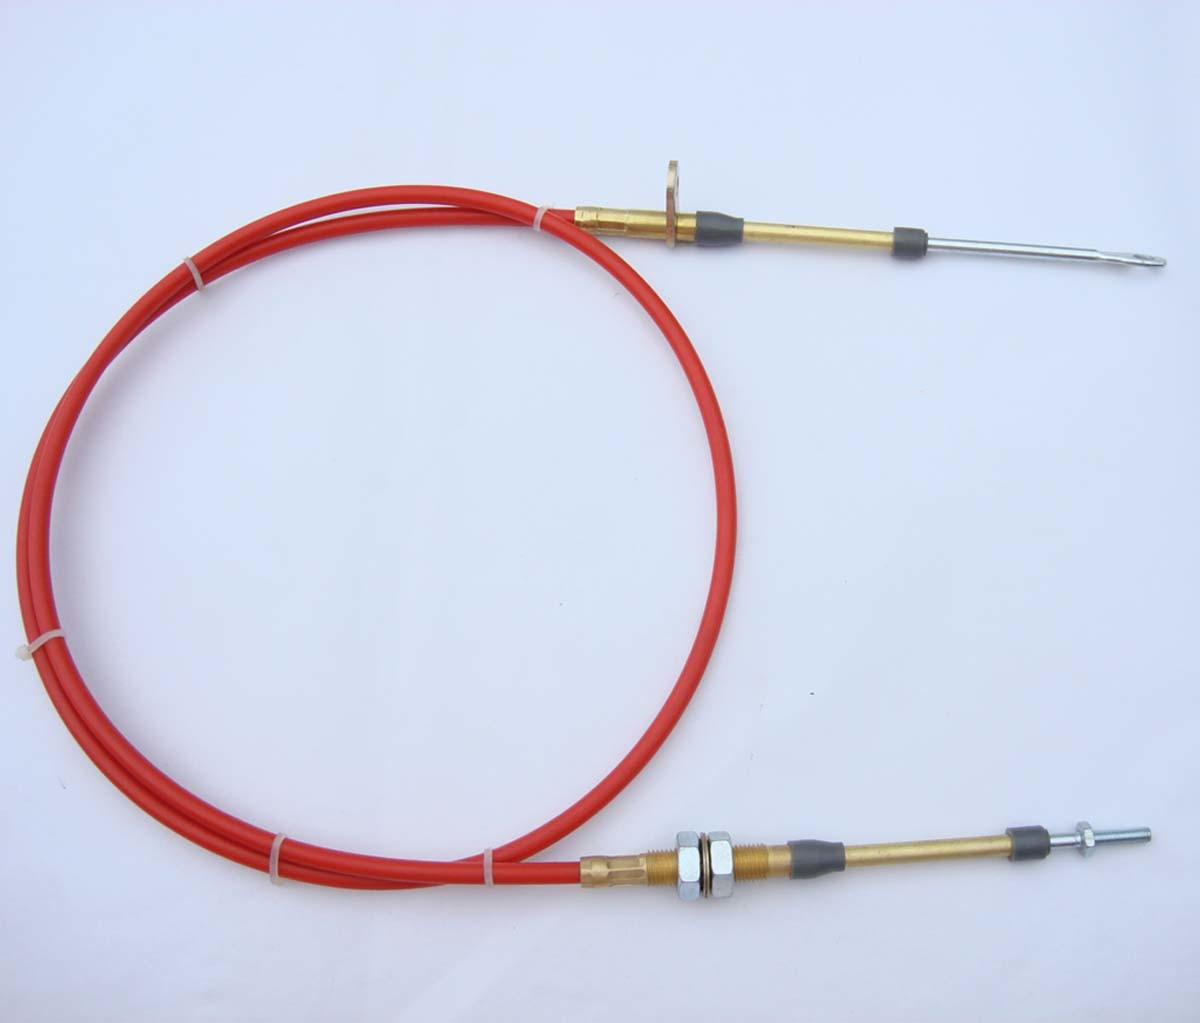 Push Pull Control Cable Design : Pull cable